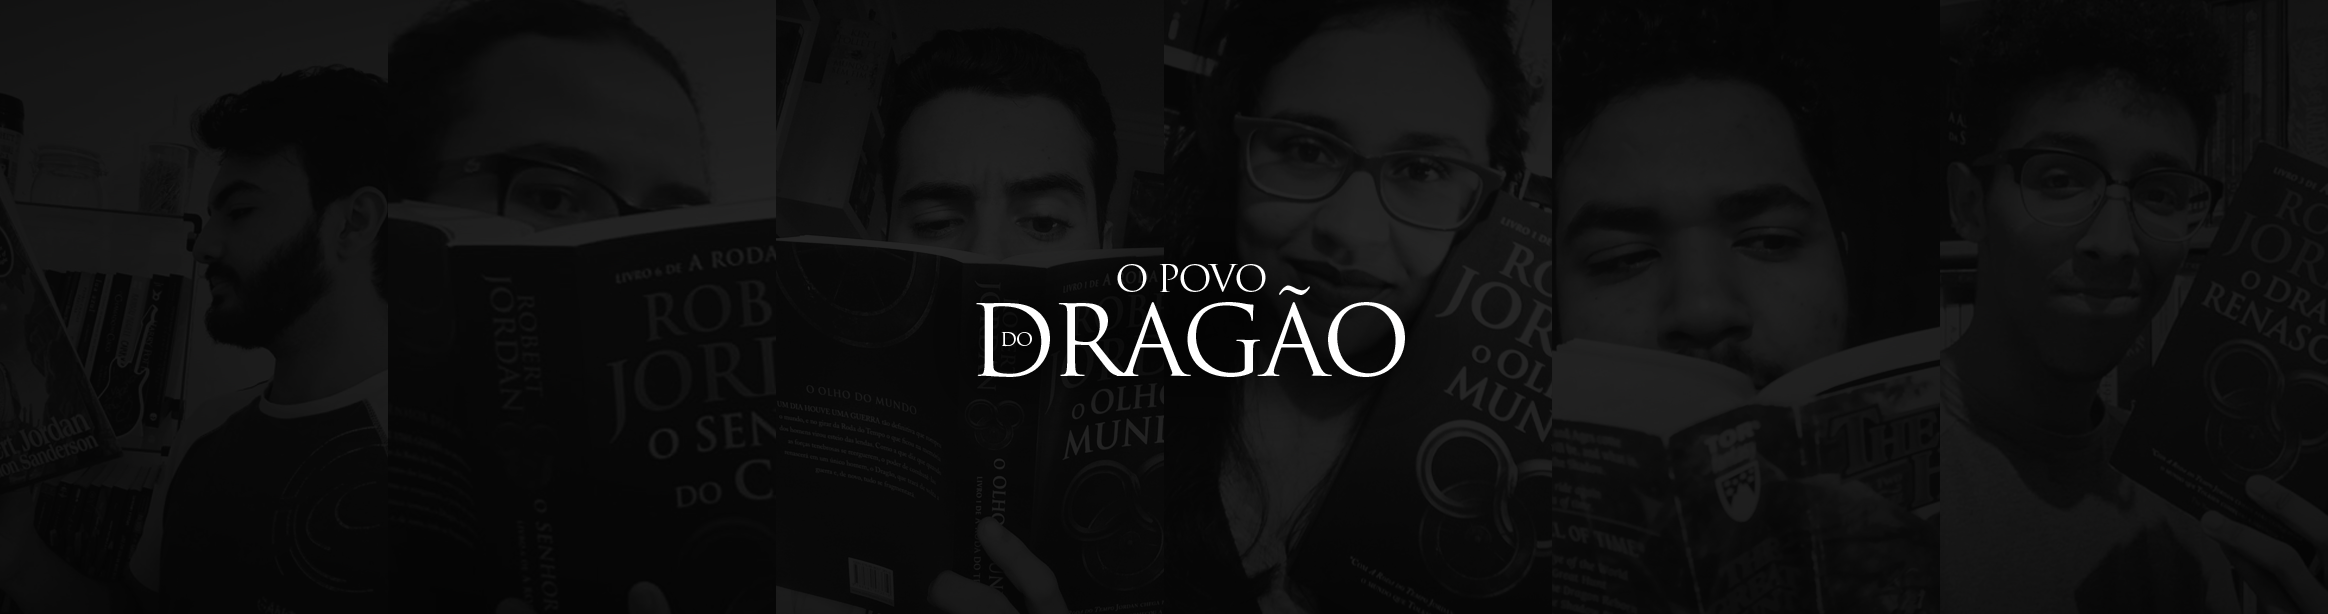 Banner d'O Povo do Dragão!.